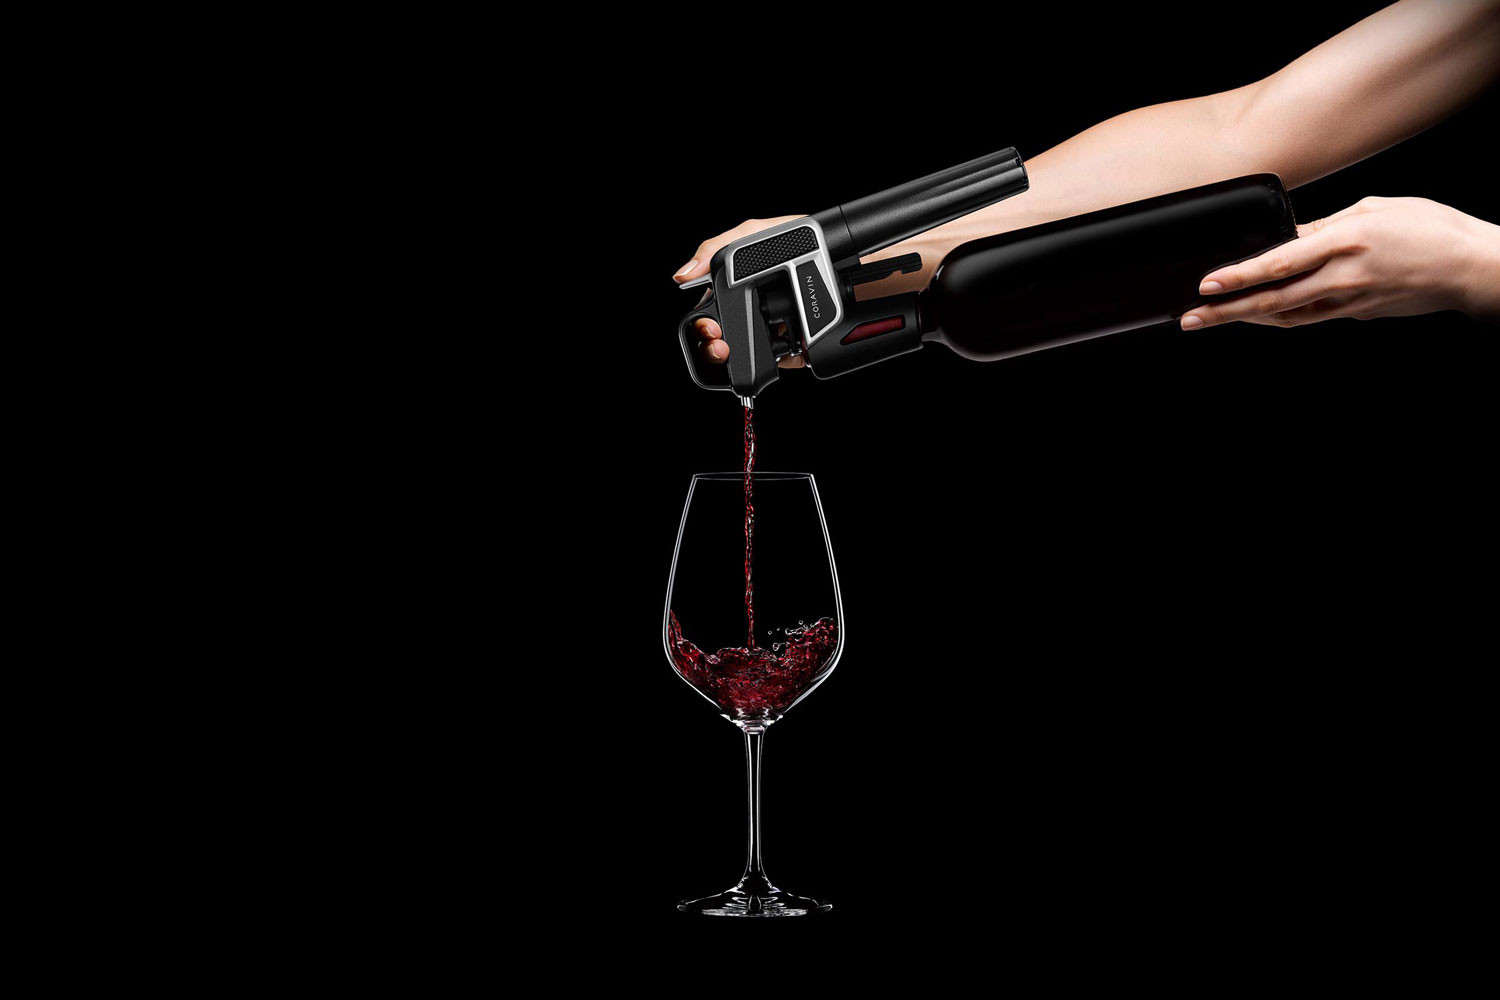 coravin-model-two-wine-opener-and-pouring-1500x1000